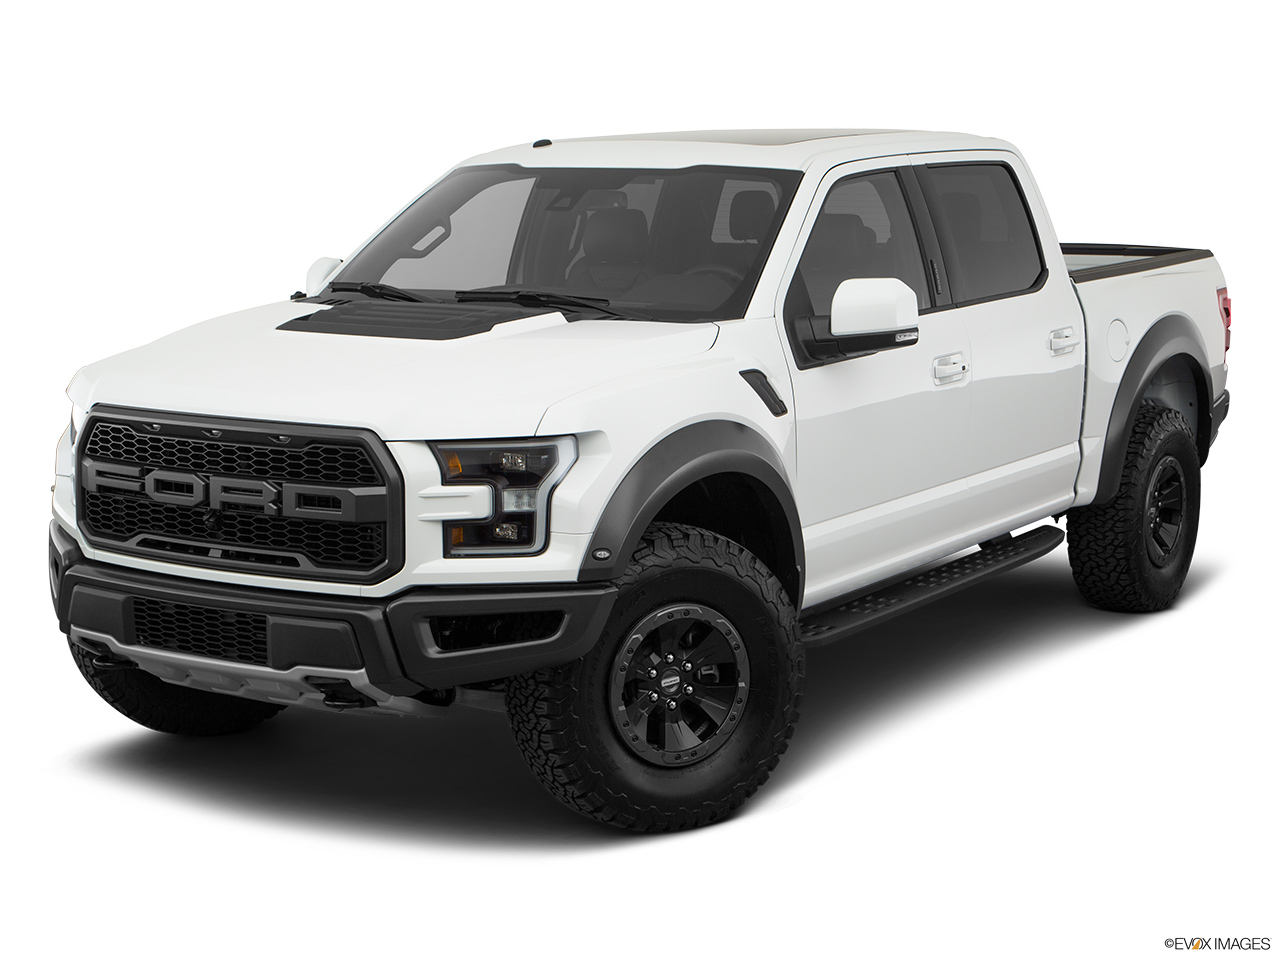 2017 ford f 150 raptor prices in uae gulf specs reviews for dubai abu dhabi and sharjah. Black Bedroom Furniture Sets. Home Design Ideas